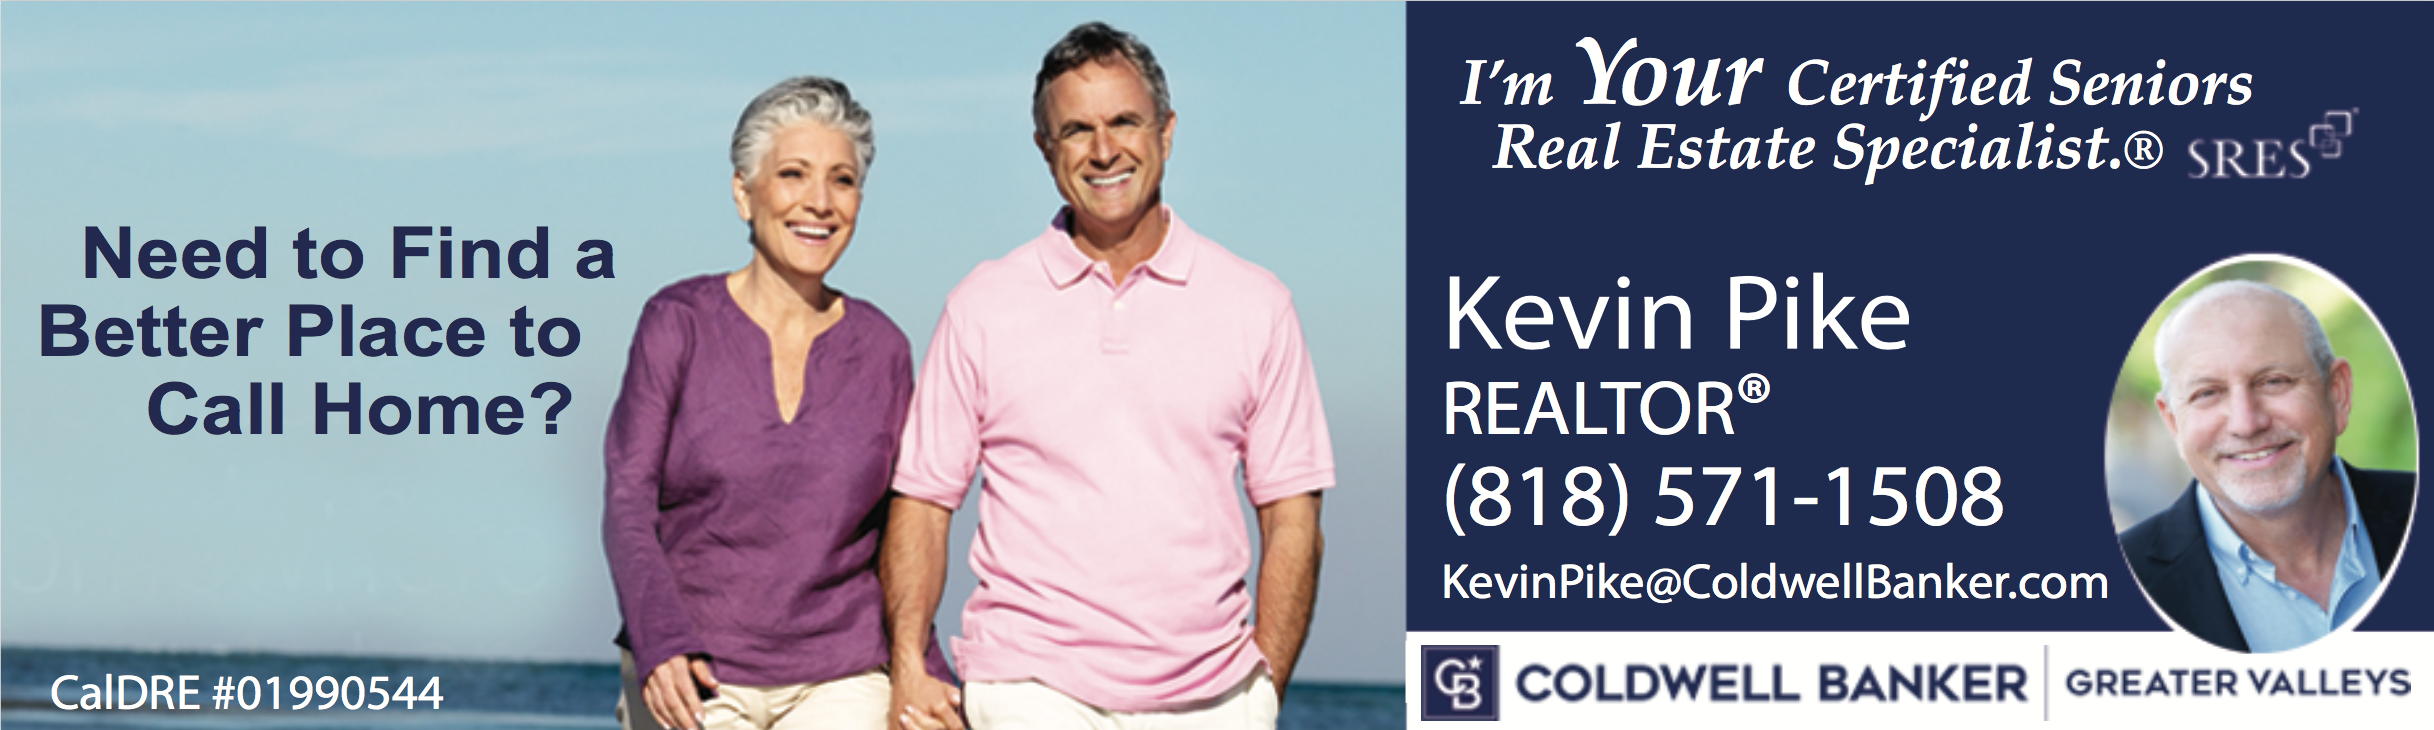 Kevin Pike Realtor